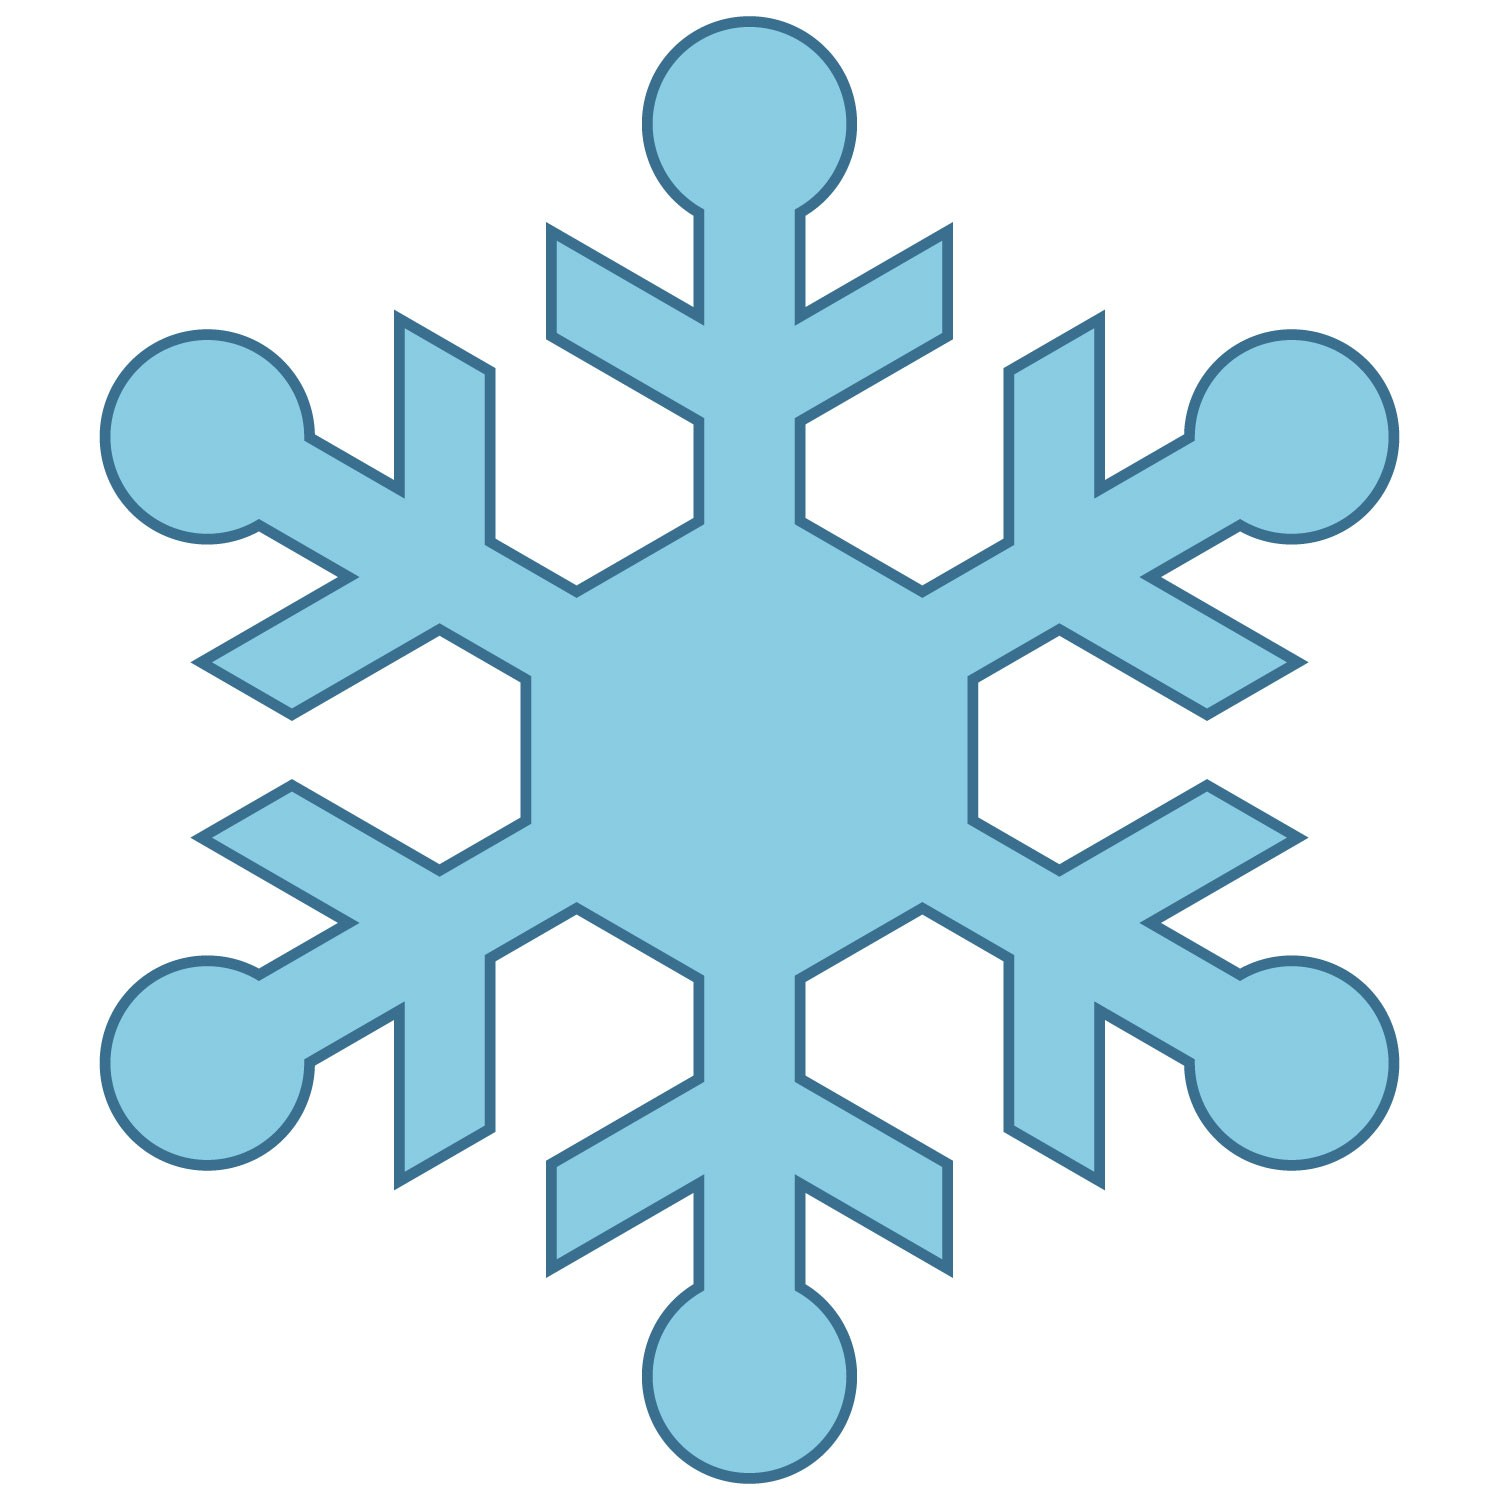 Simple snowflake clipart 3